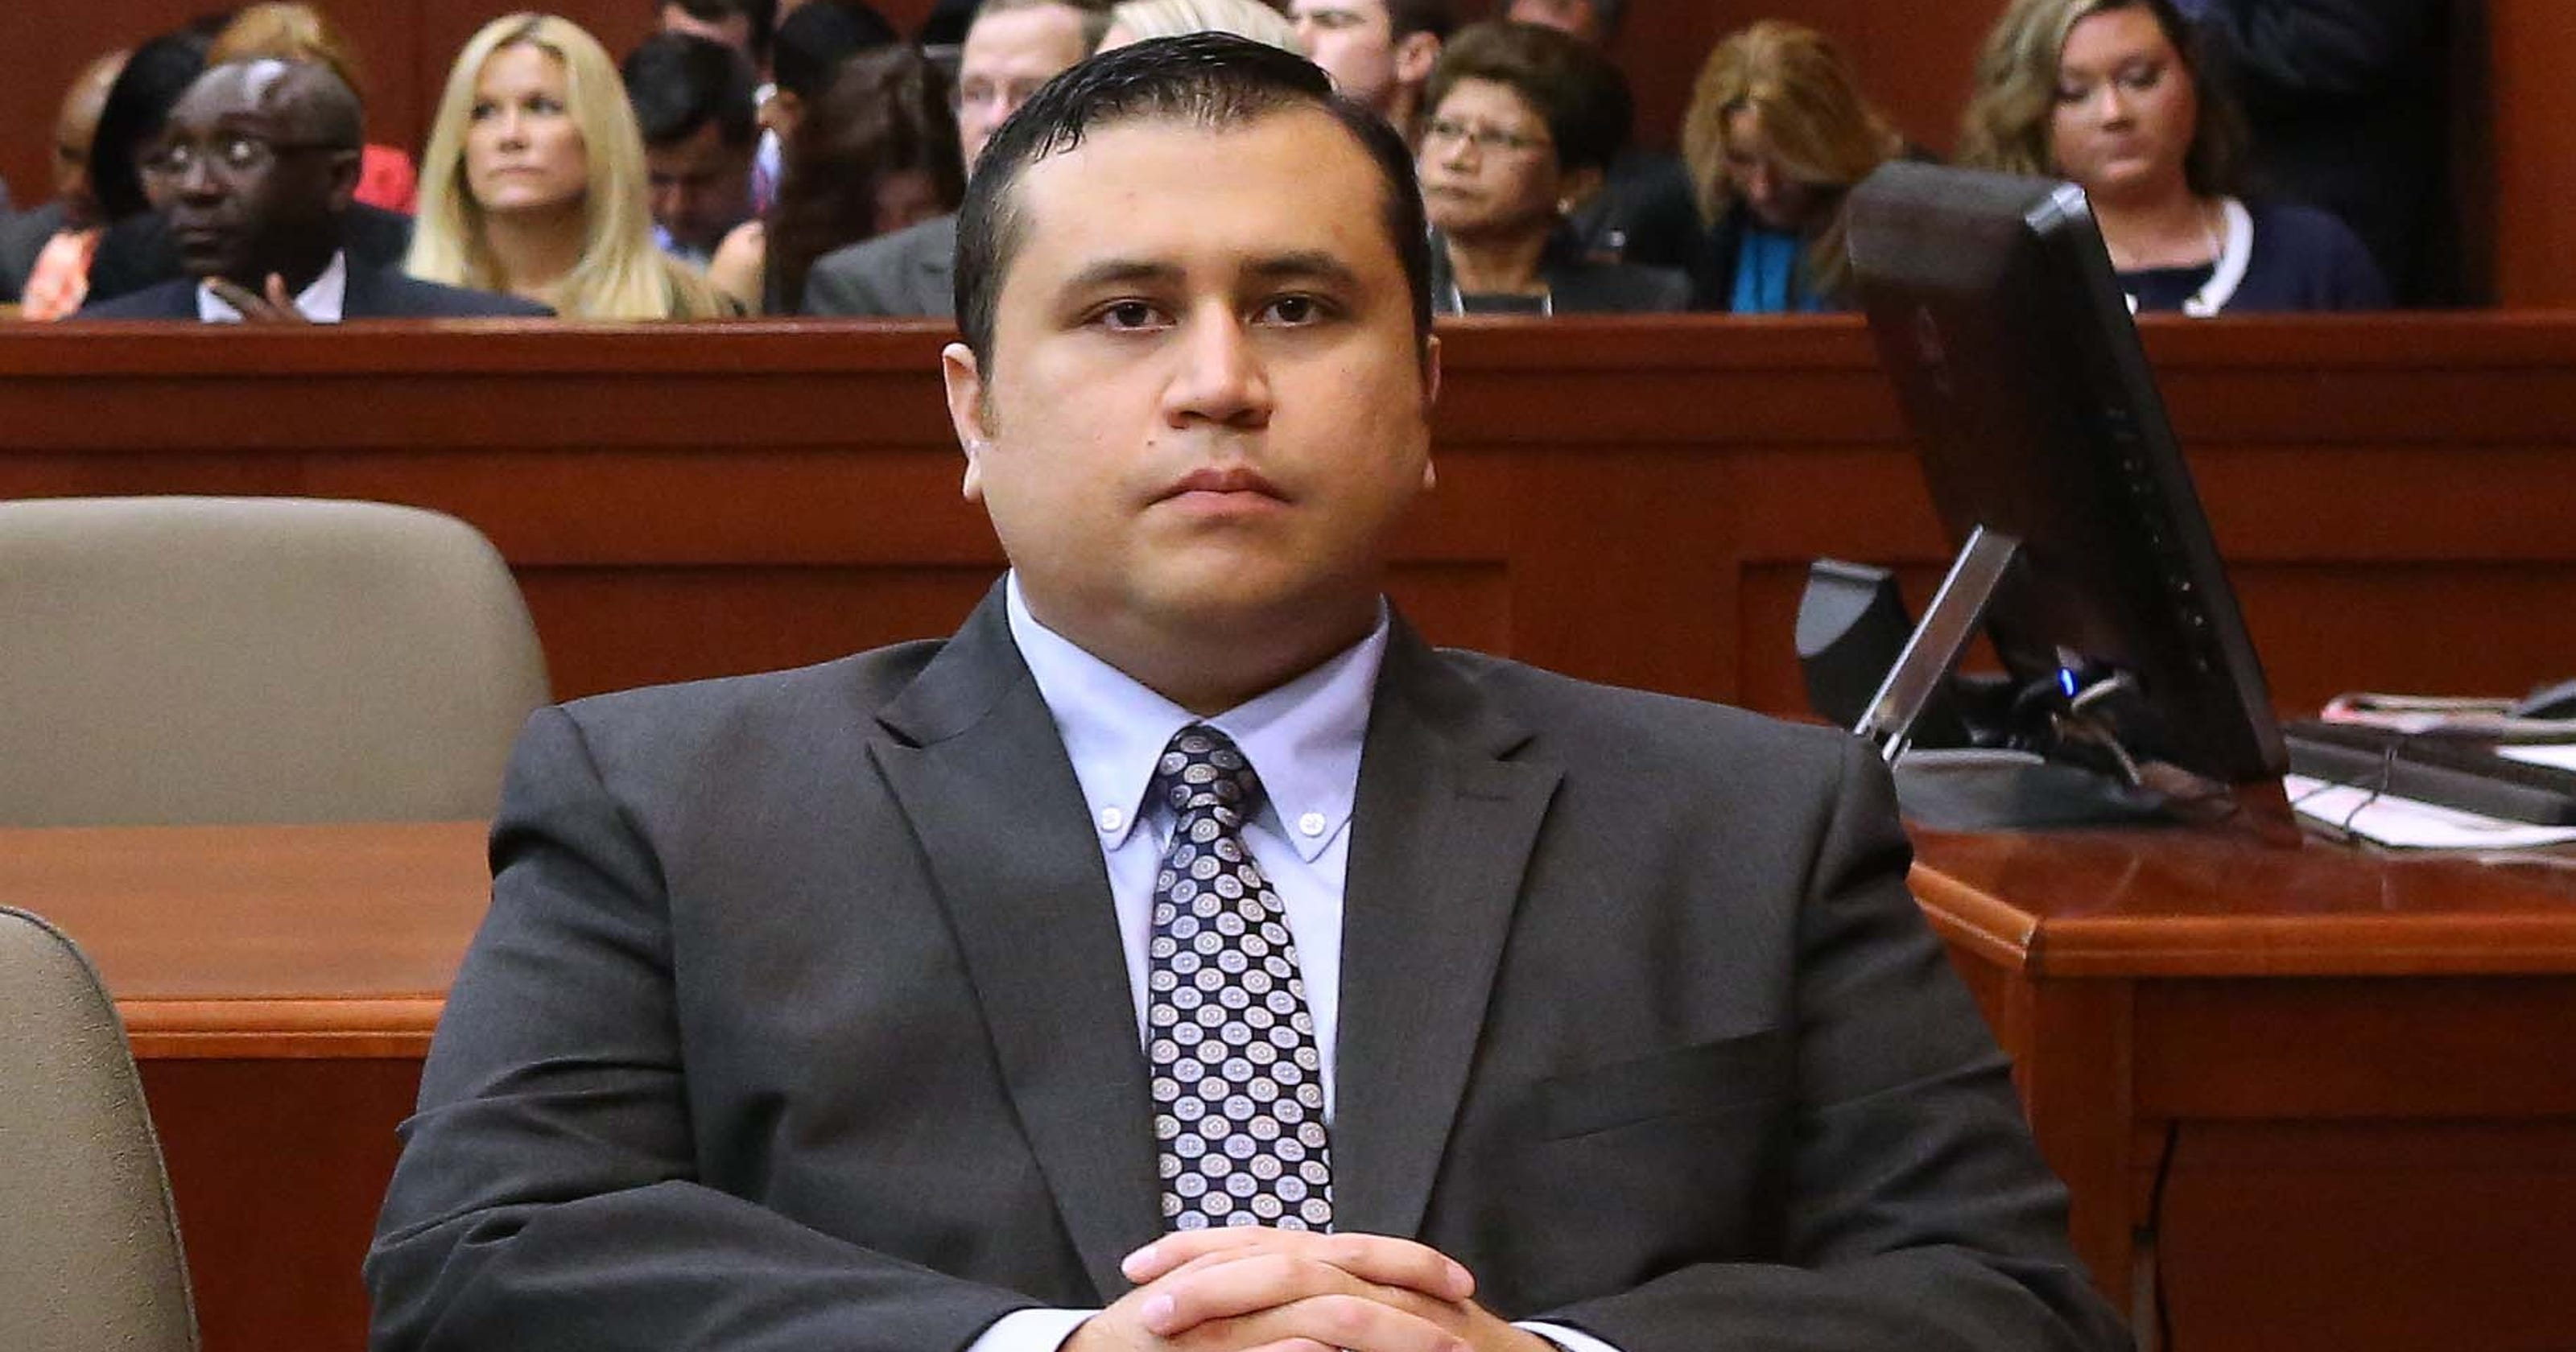 George Zimmerman Celebrity Boxing Match - YouTube